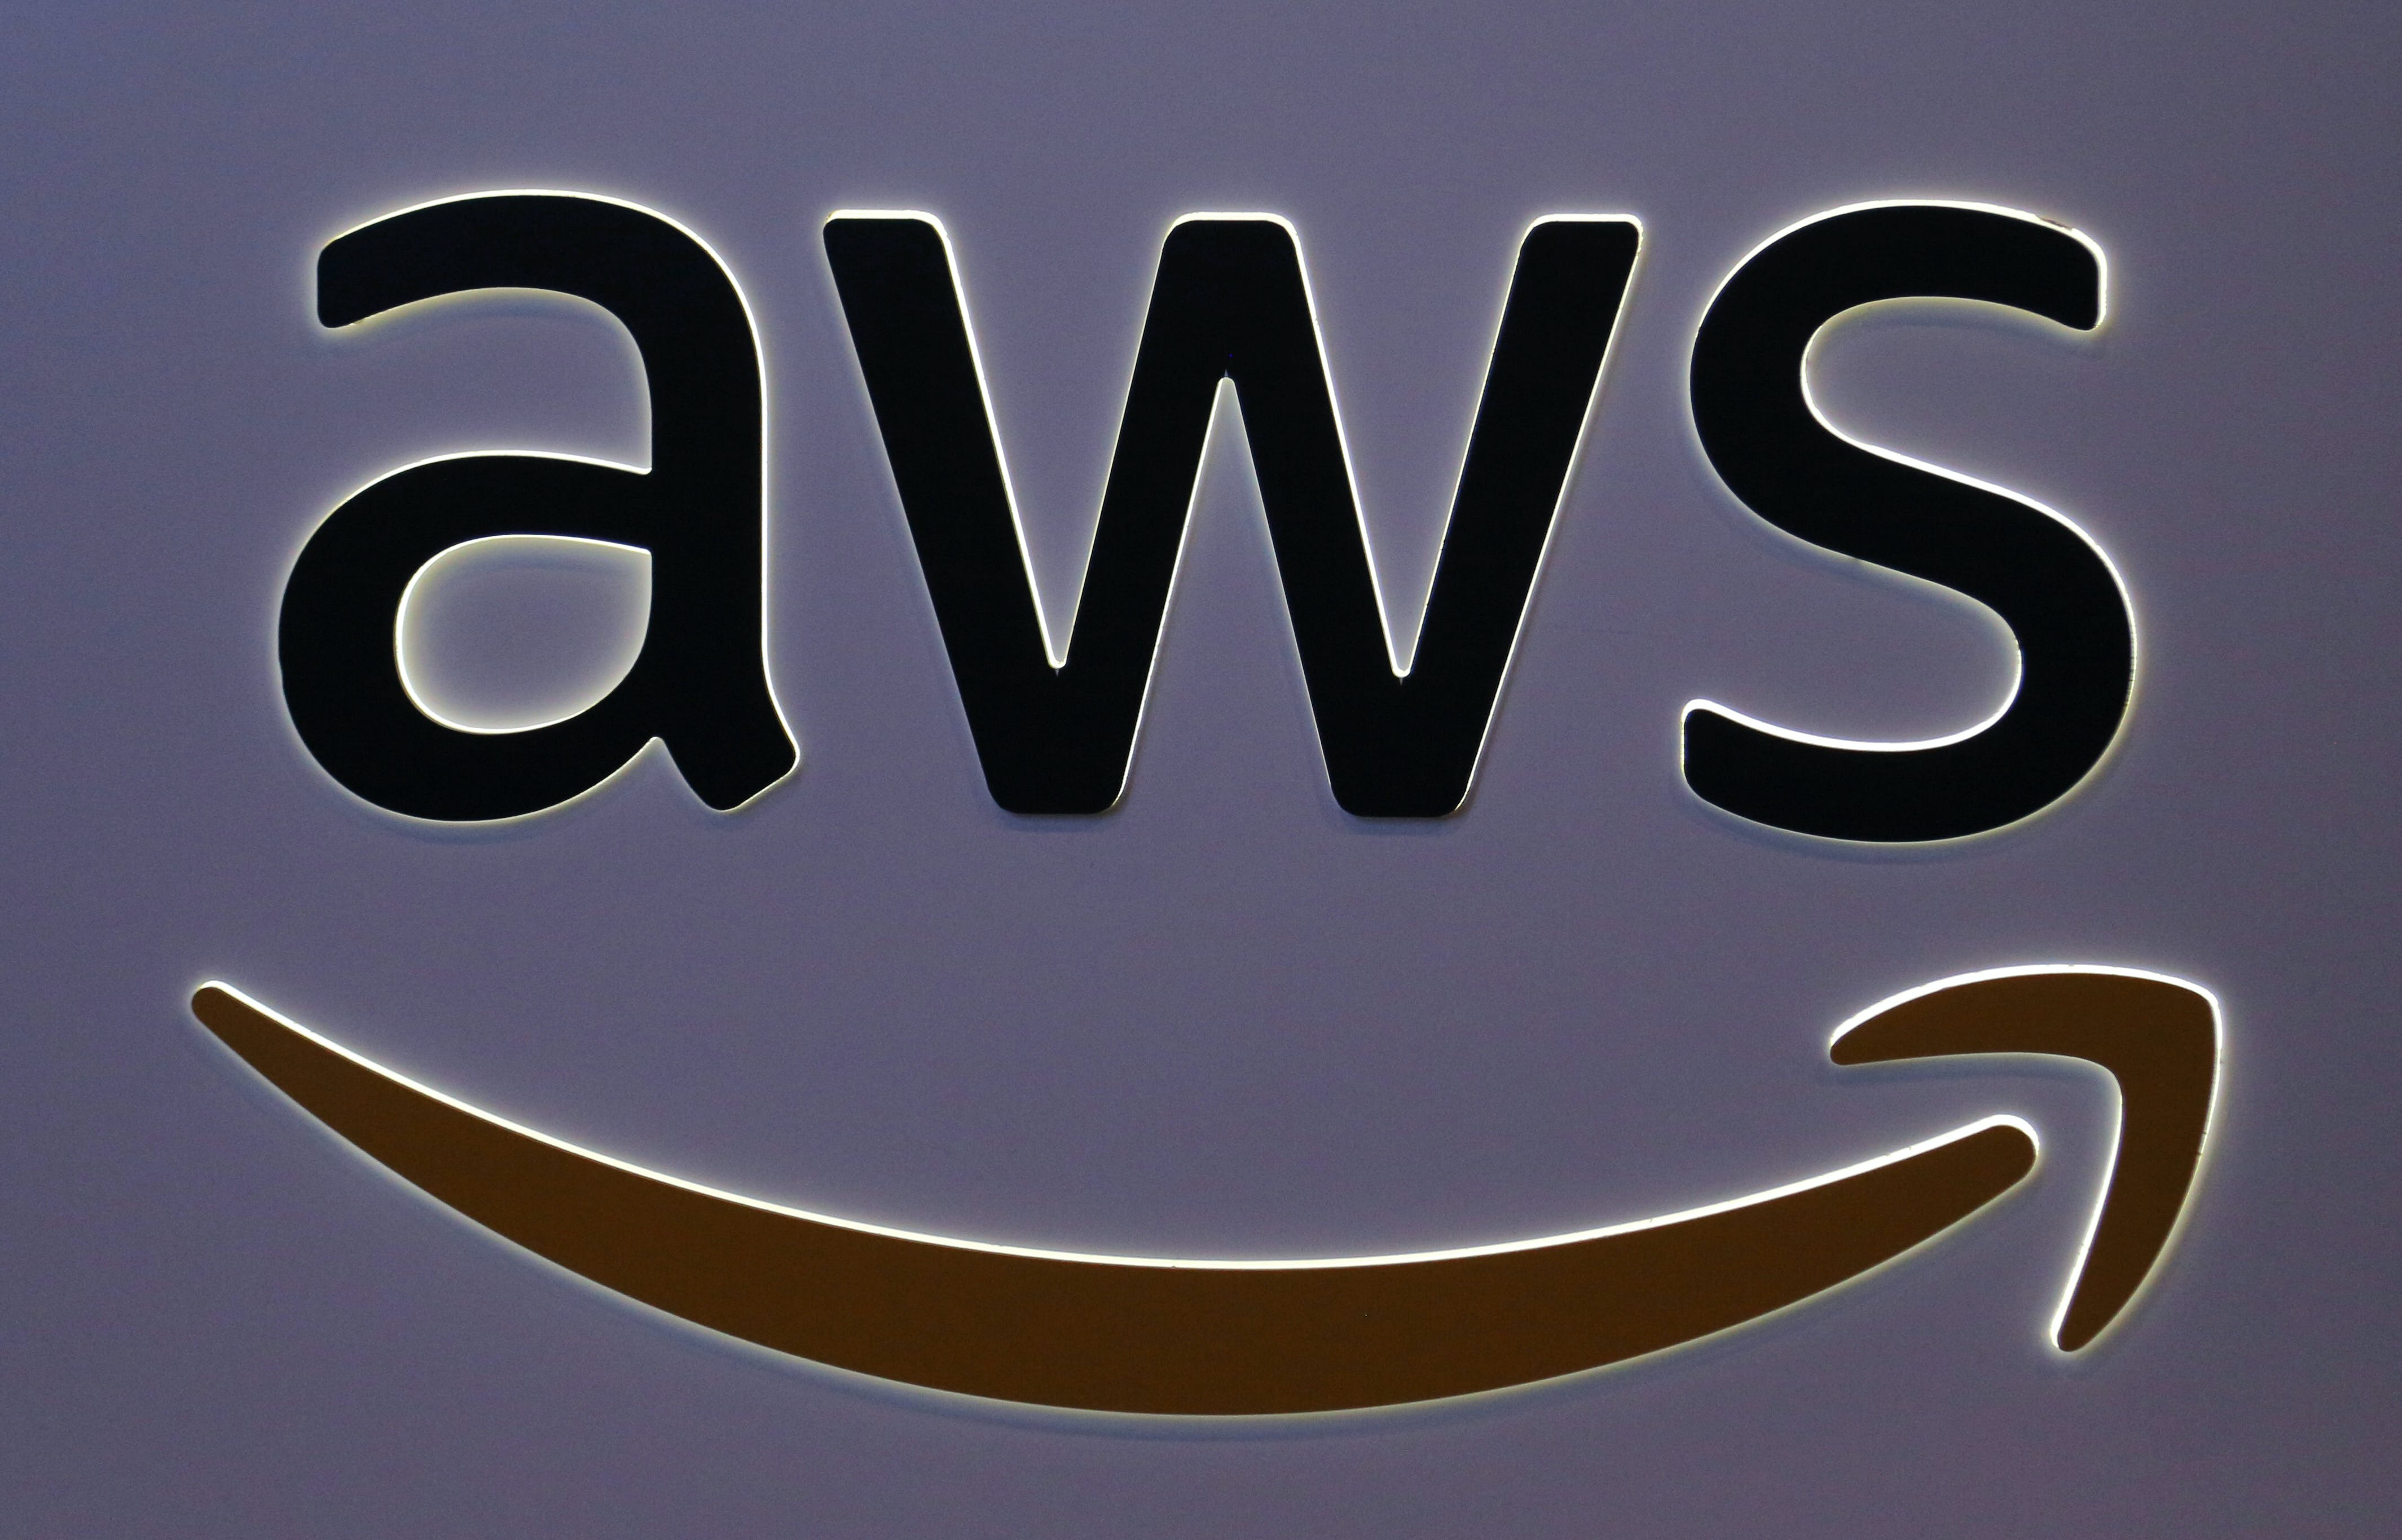 The logo for Amazon Web Services (AWS) is seen at the SIBOS banking and financial conference in Toronto, Ontario, Canada October 19, 2017. Picture taken October 19, 2017. REUTERS/Chris Helgren - RC1C46A72200